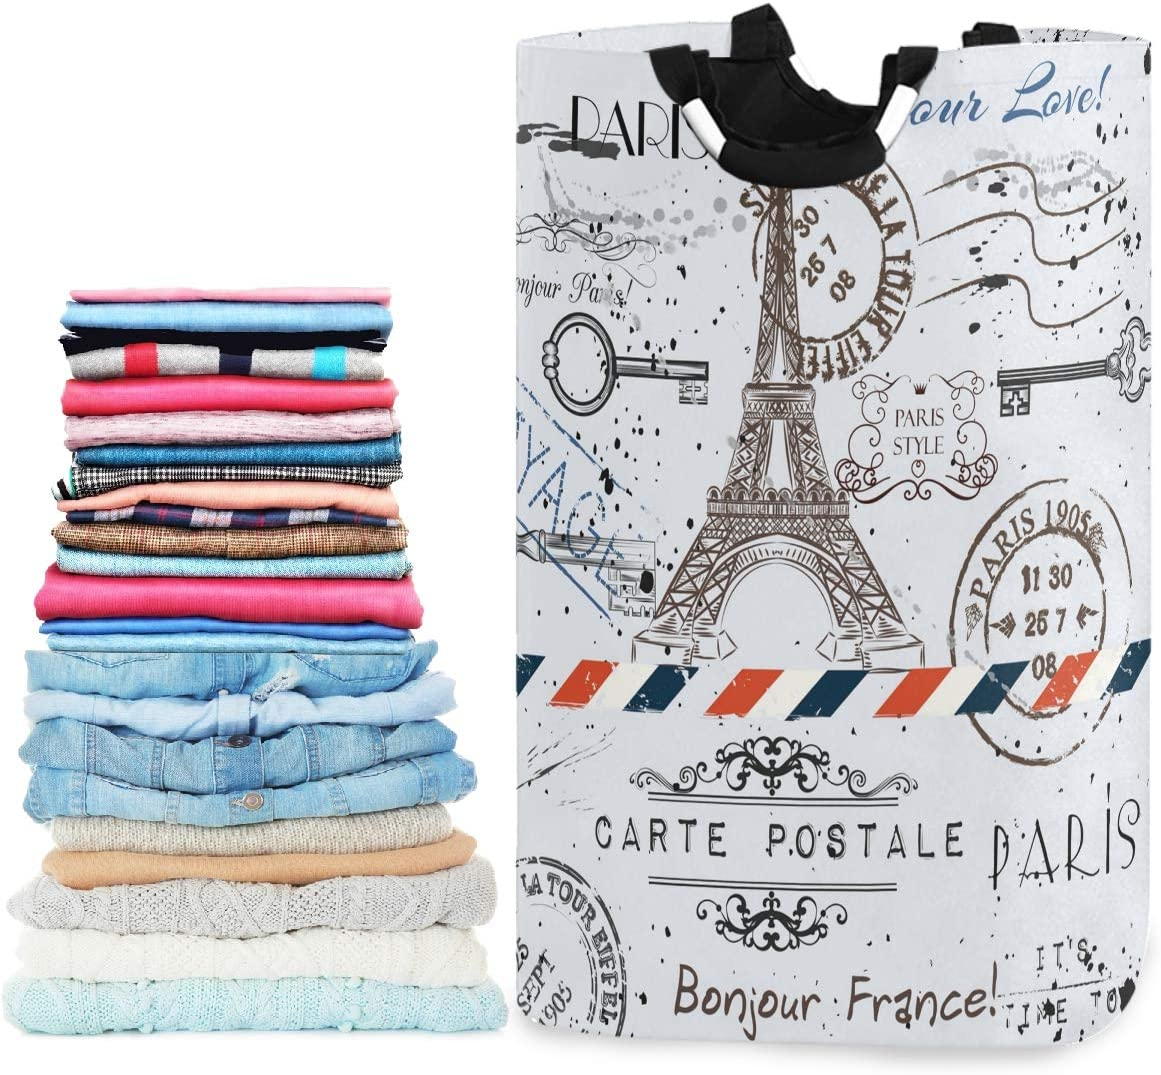 visesunny Unique Style Paris Eiffel Tower Lettering Large Capacity Laundry Hamper Basket Water-Resistant Oxford Cloth Storage Baskets for Bedroom, Bathroom, Dorm, Kids Room